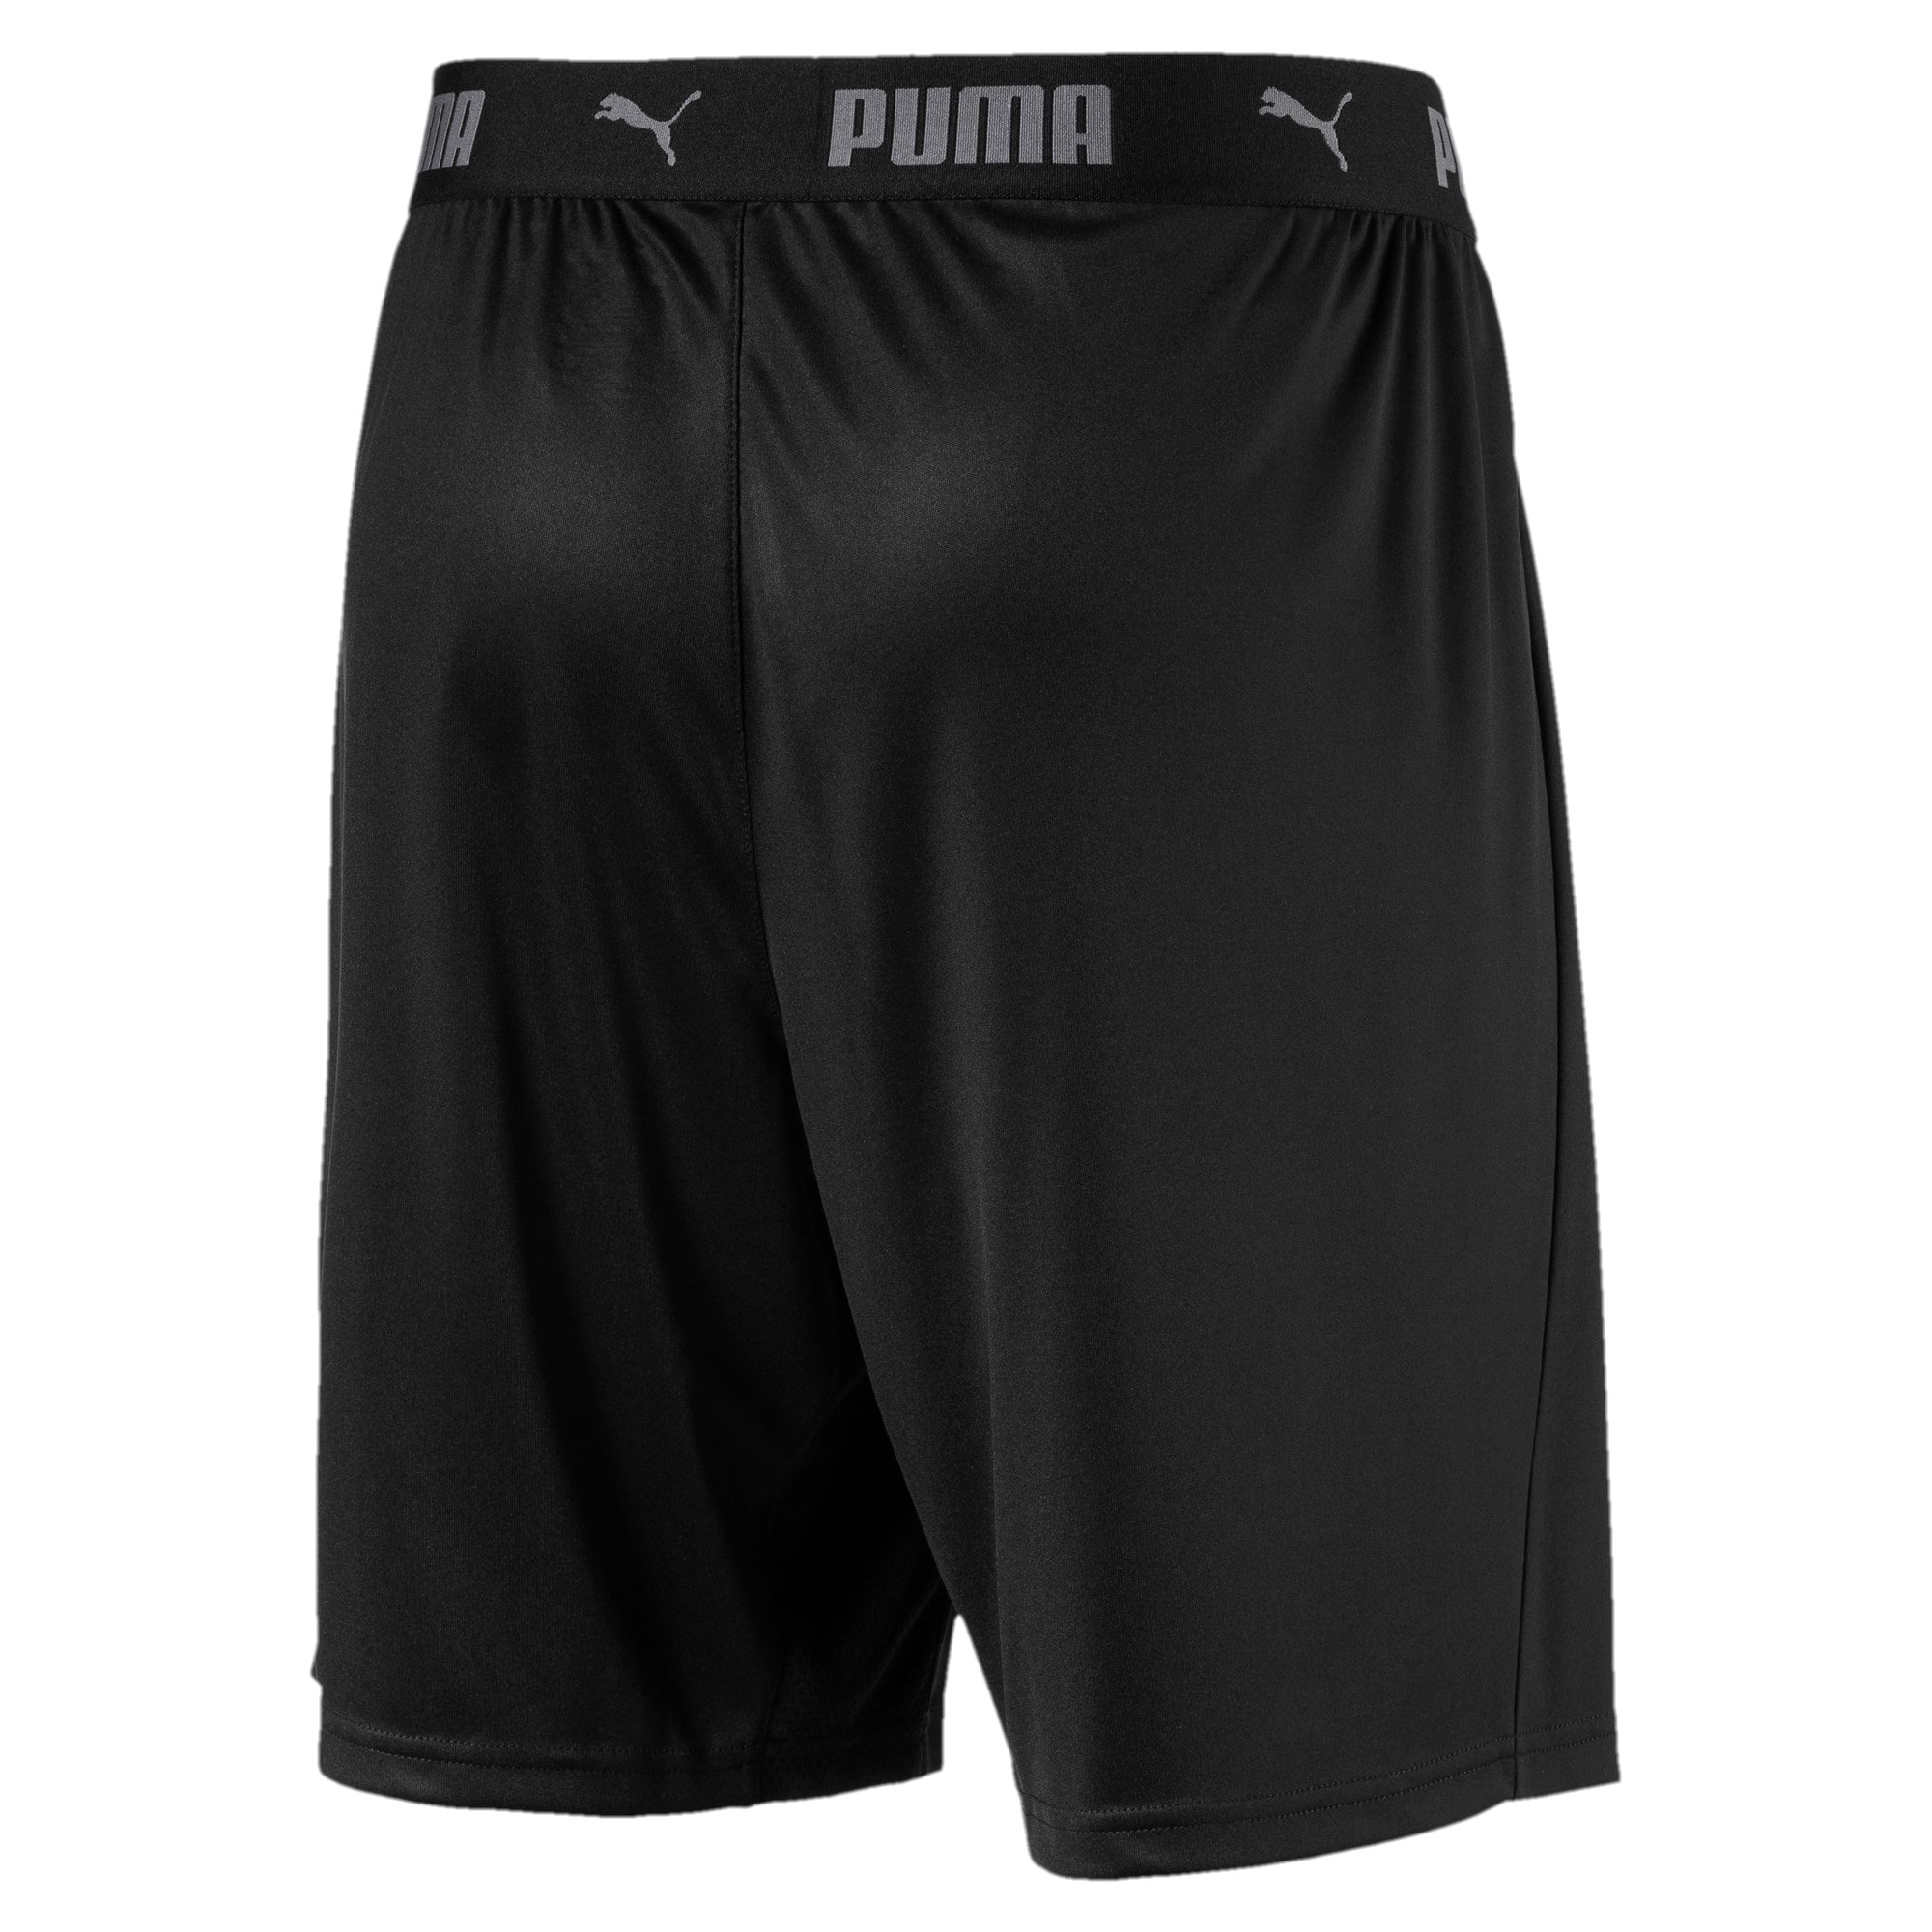 Thumbnail 5 of Men's Shorts, Puma Black, medium